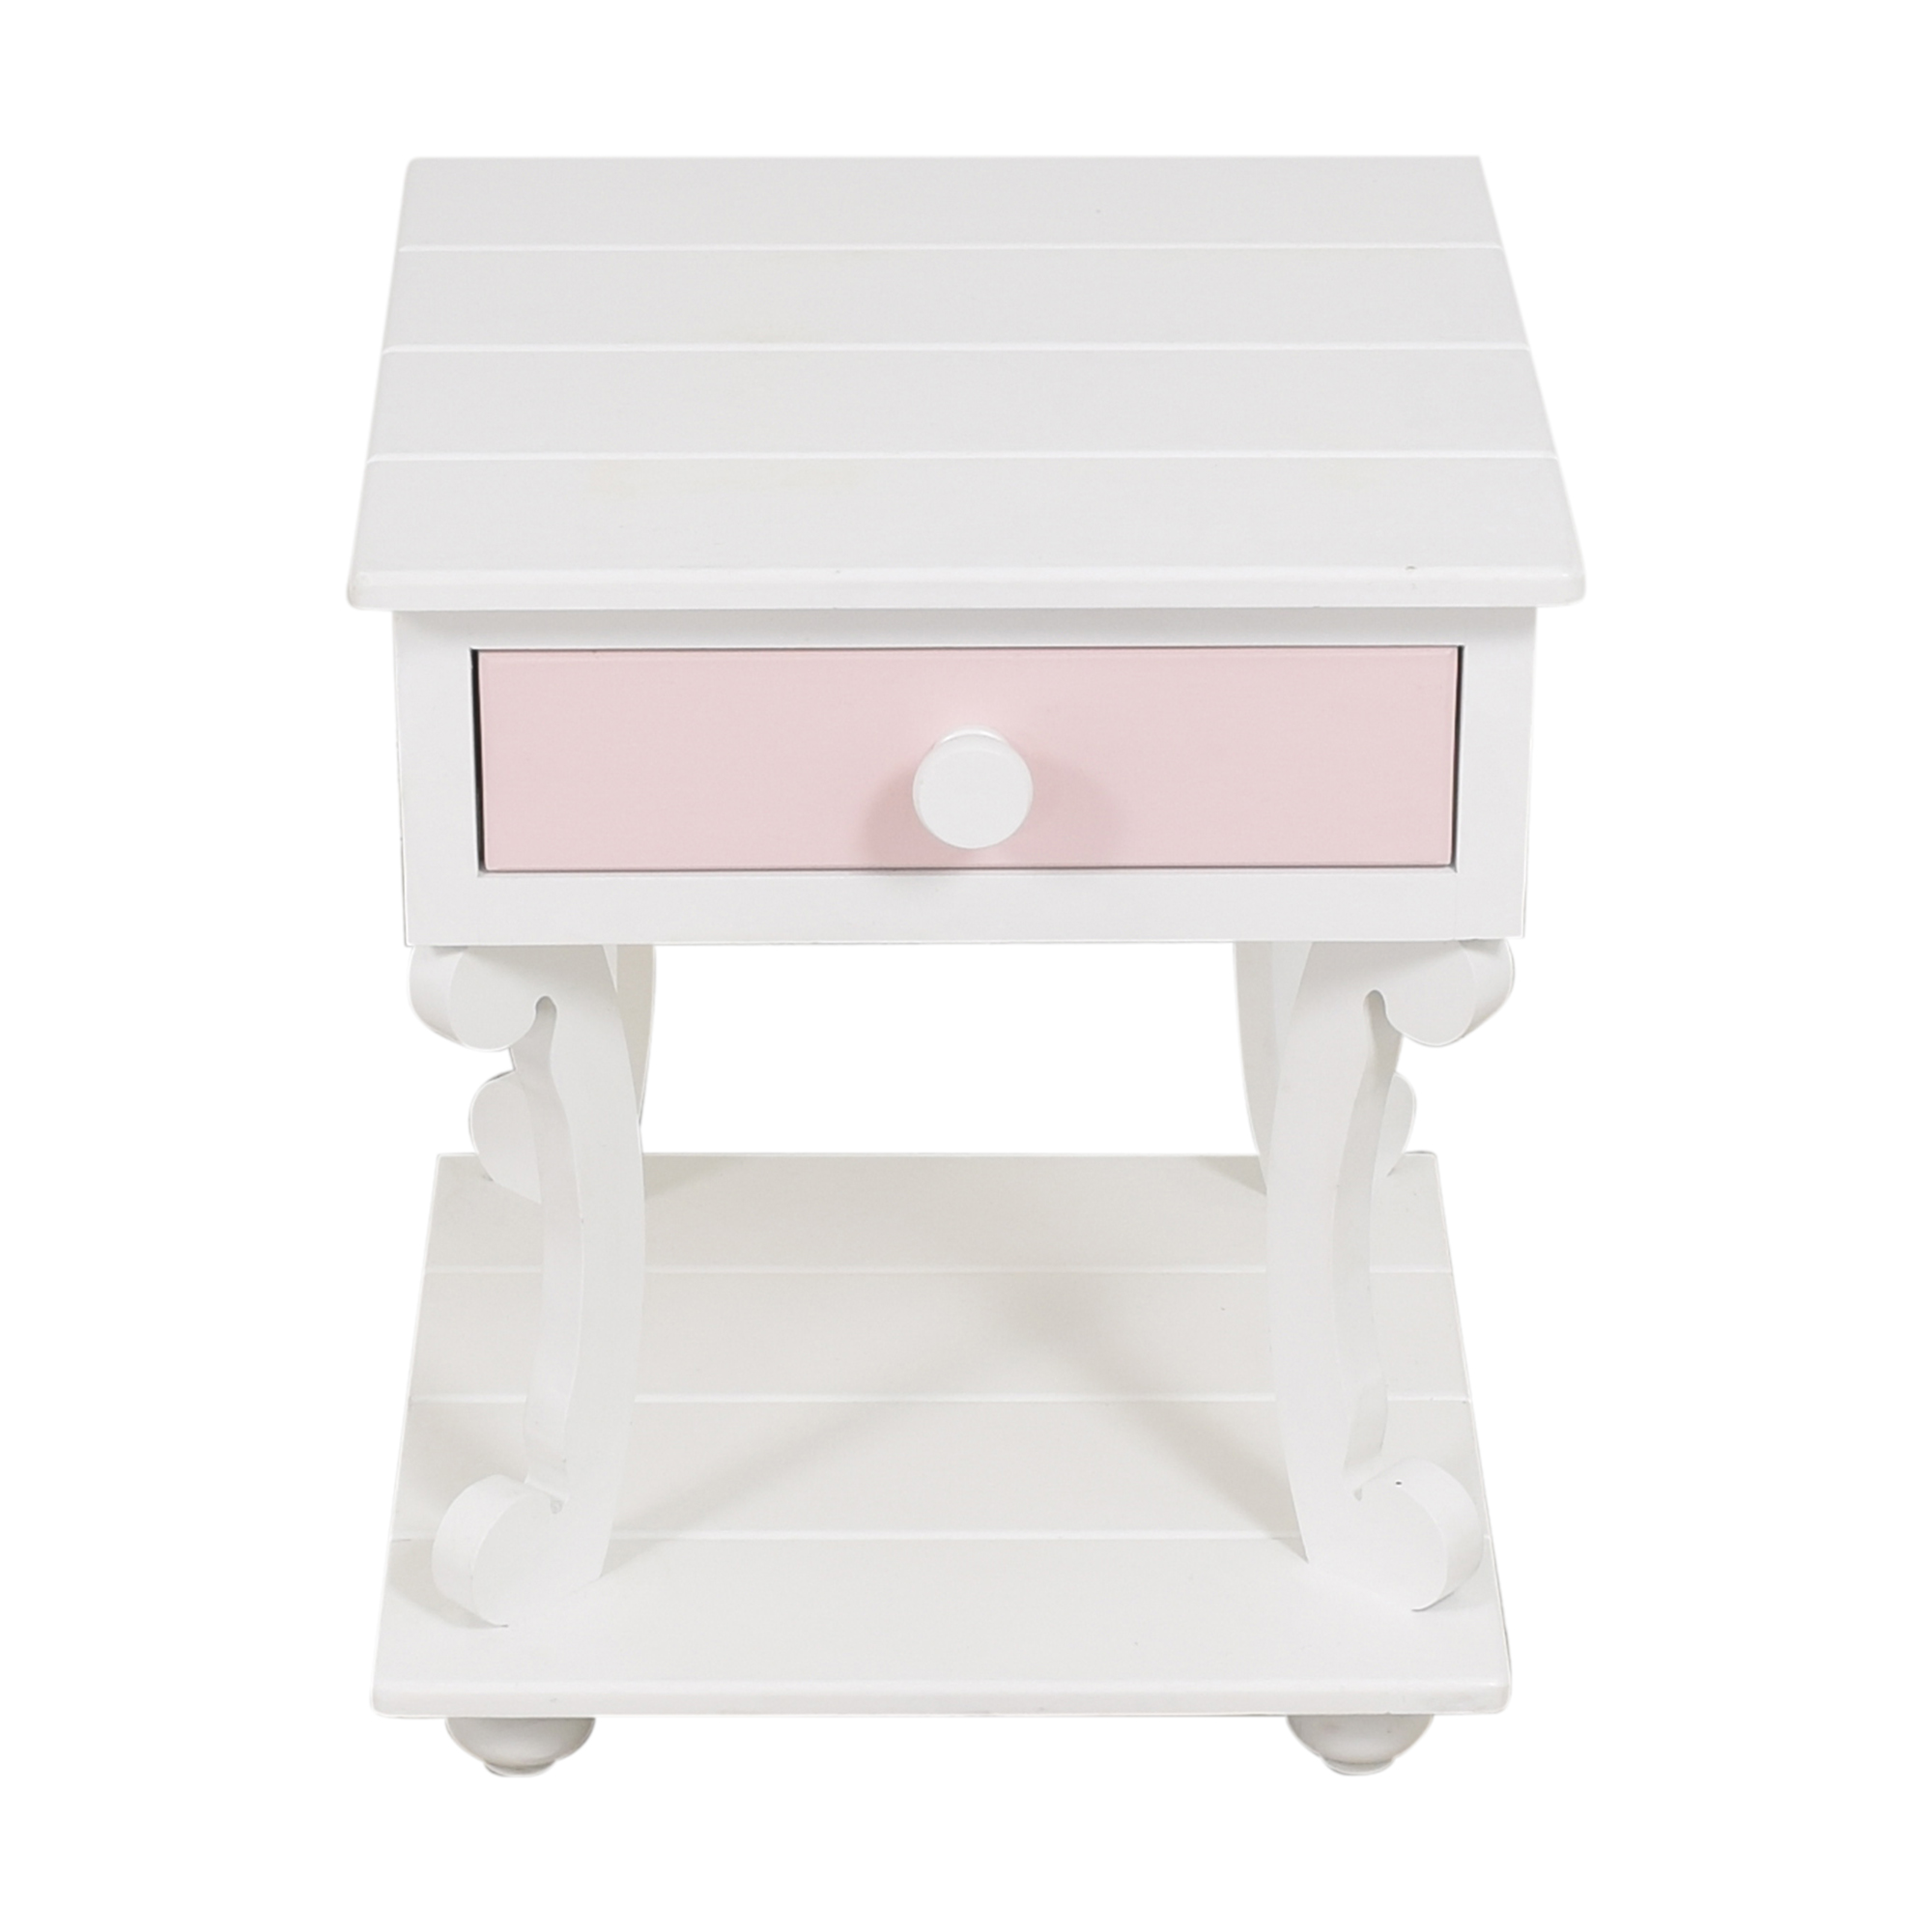 Single Drawer Nightstand Tables